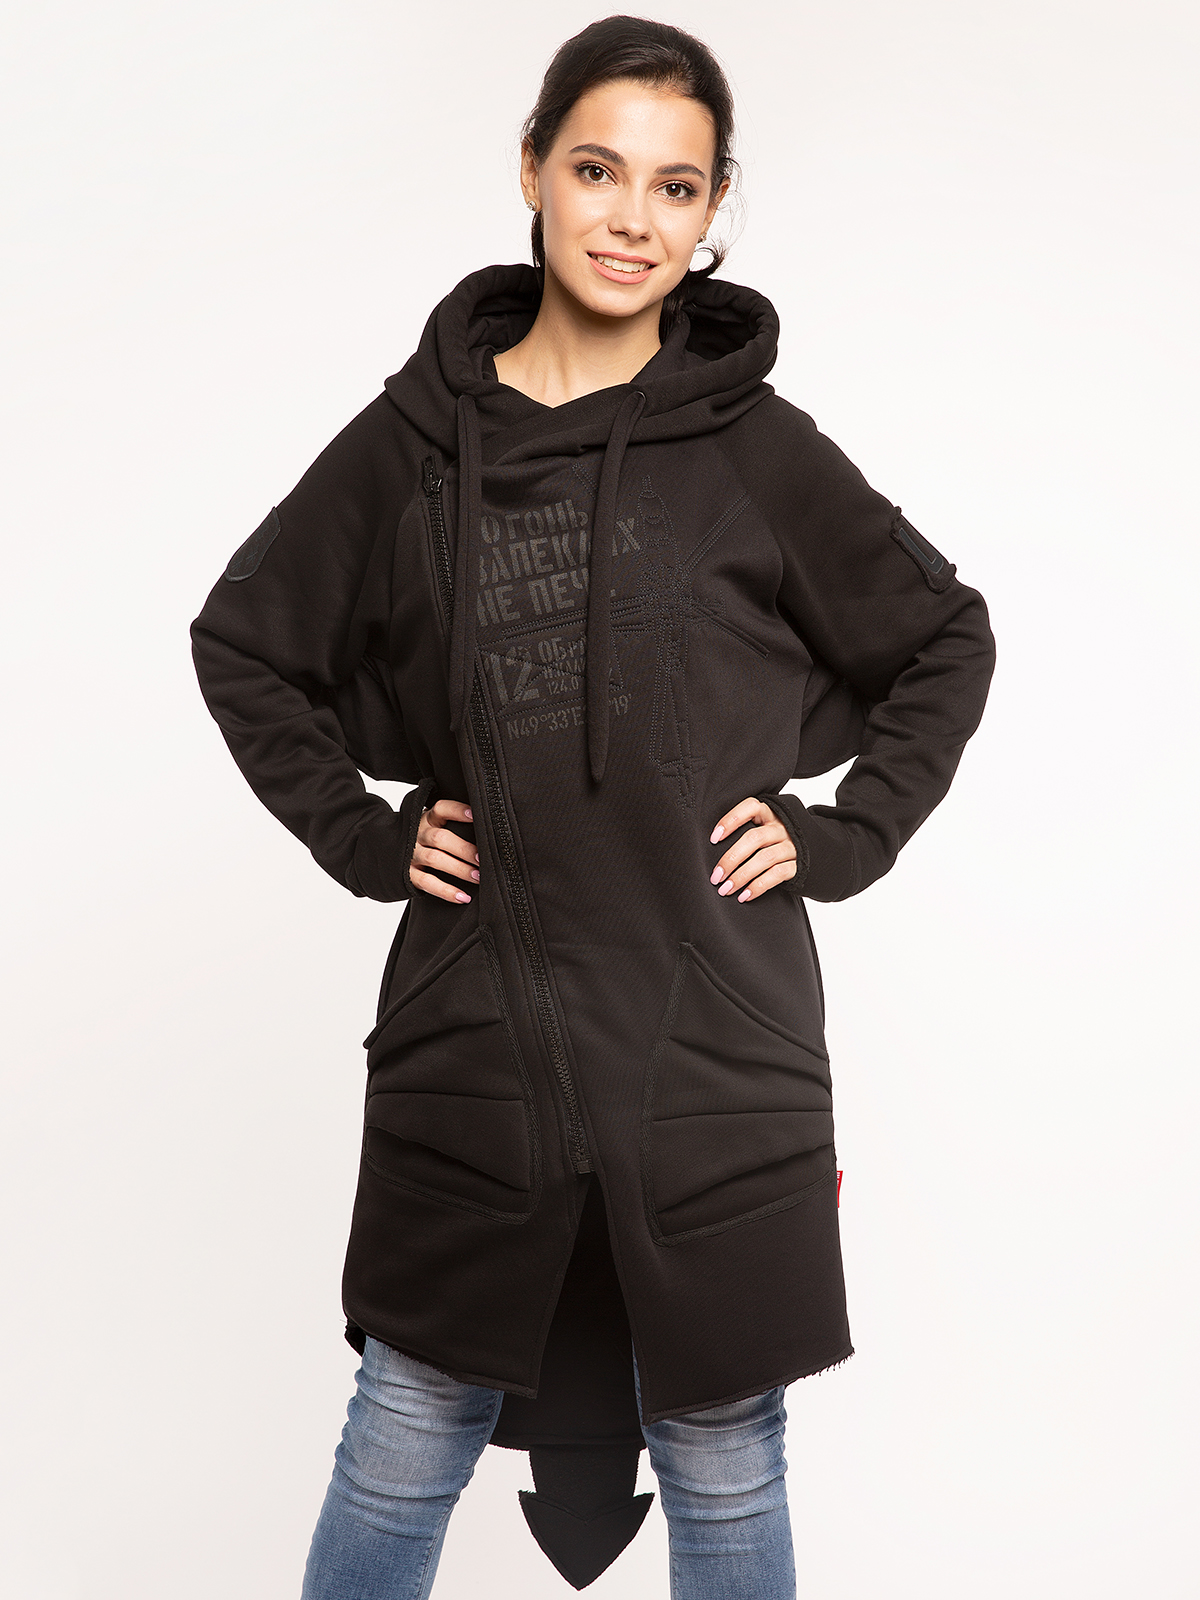 Women's Hoodie Dragon. Color black. 7.